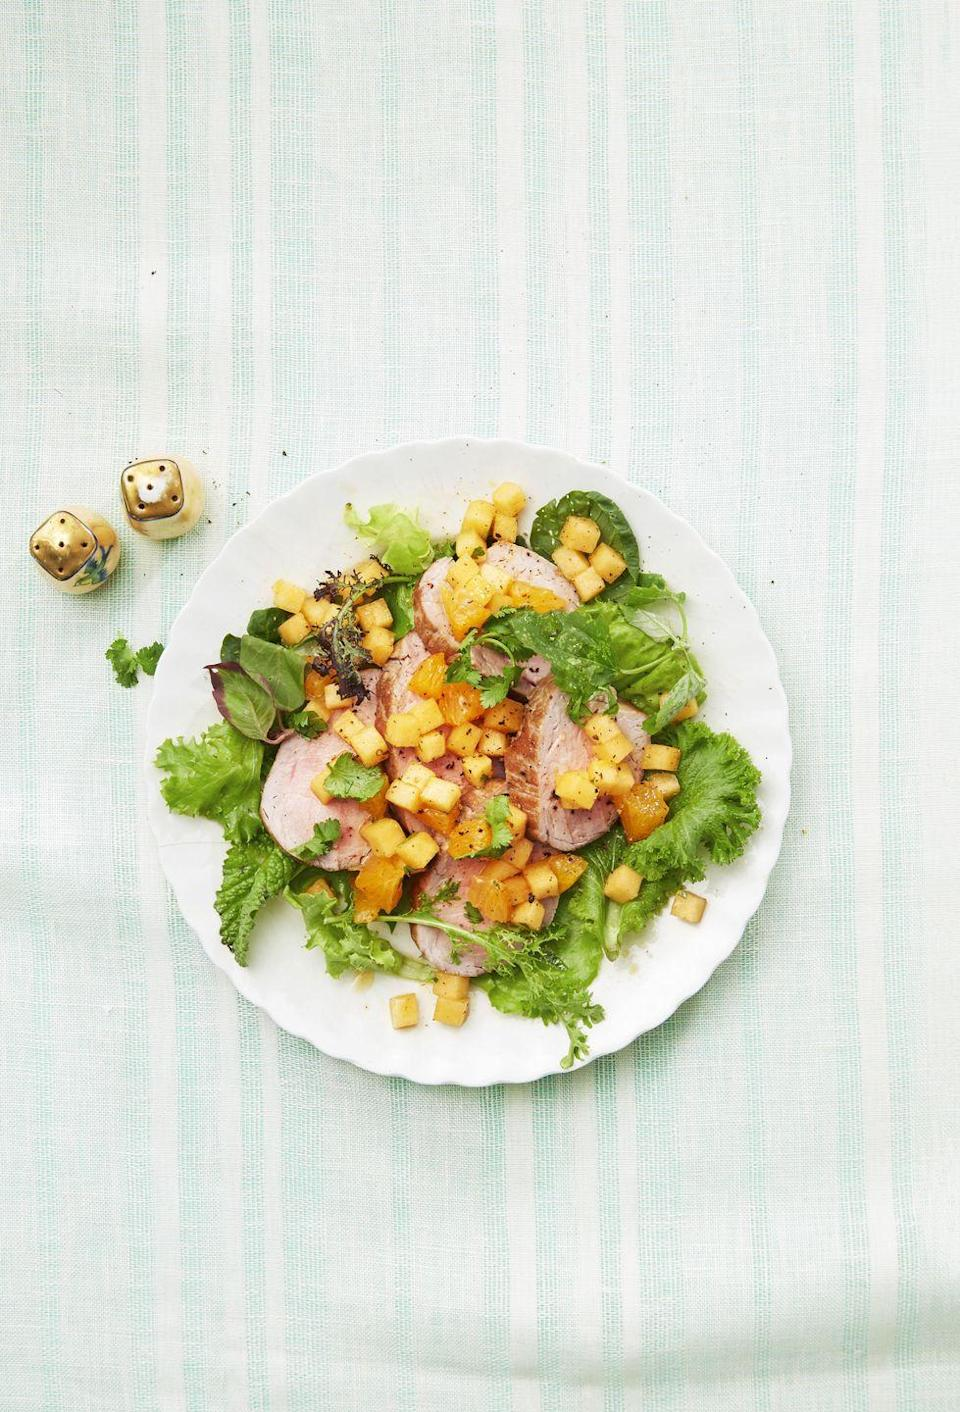 "<p>No matter the season, escape to the tropics with this sweet, fruity main.</p><p><a href=""https://www.goodhousekeeping.com/food-recipes/easy/a34132/pork-tenderloin-with-melon-salsa/"" rel=""nofollow noopener"" target=""_blank"" data-ylk=""slk:Get the recipe for Pork Tenderloin with Melon Salsa »"" class=""link rapid-noclick-resp""><em>Get the recipe for Pork Tenderloin with Melon Salsa »</em></a></p>"